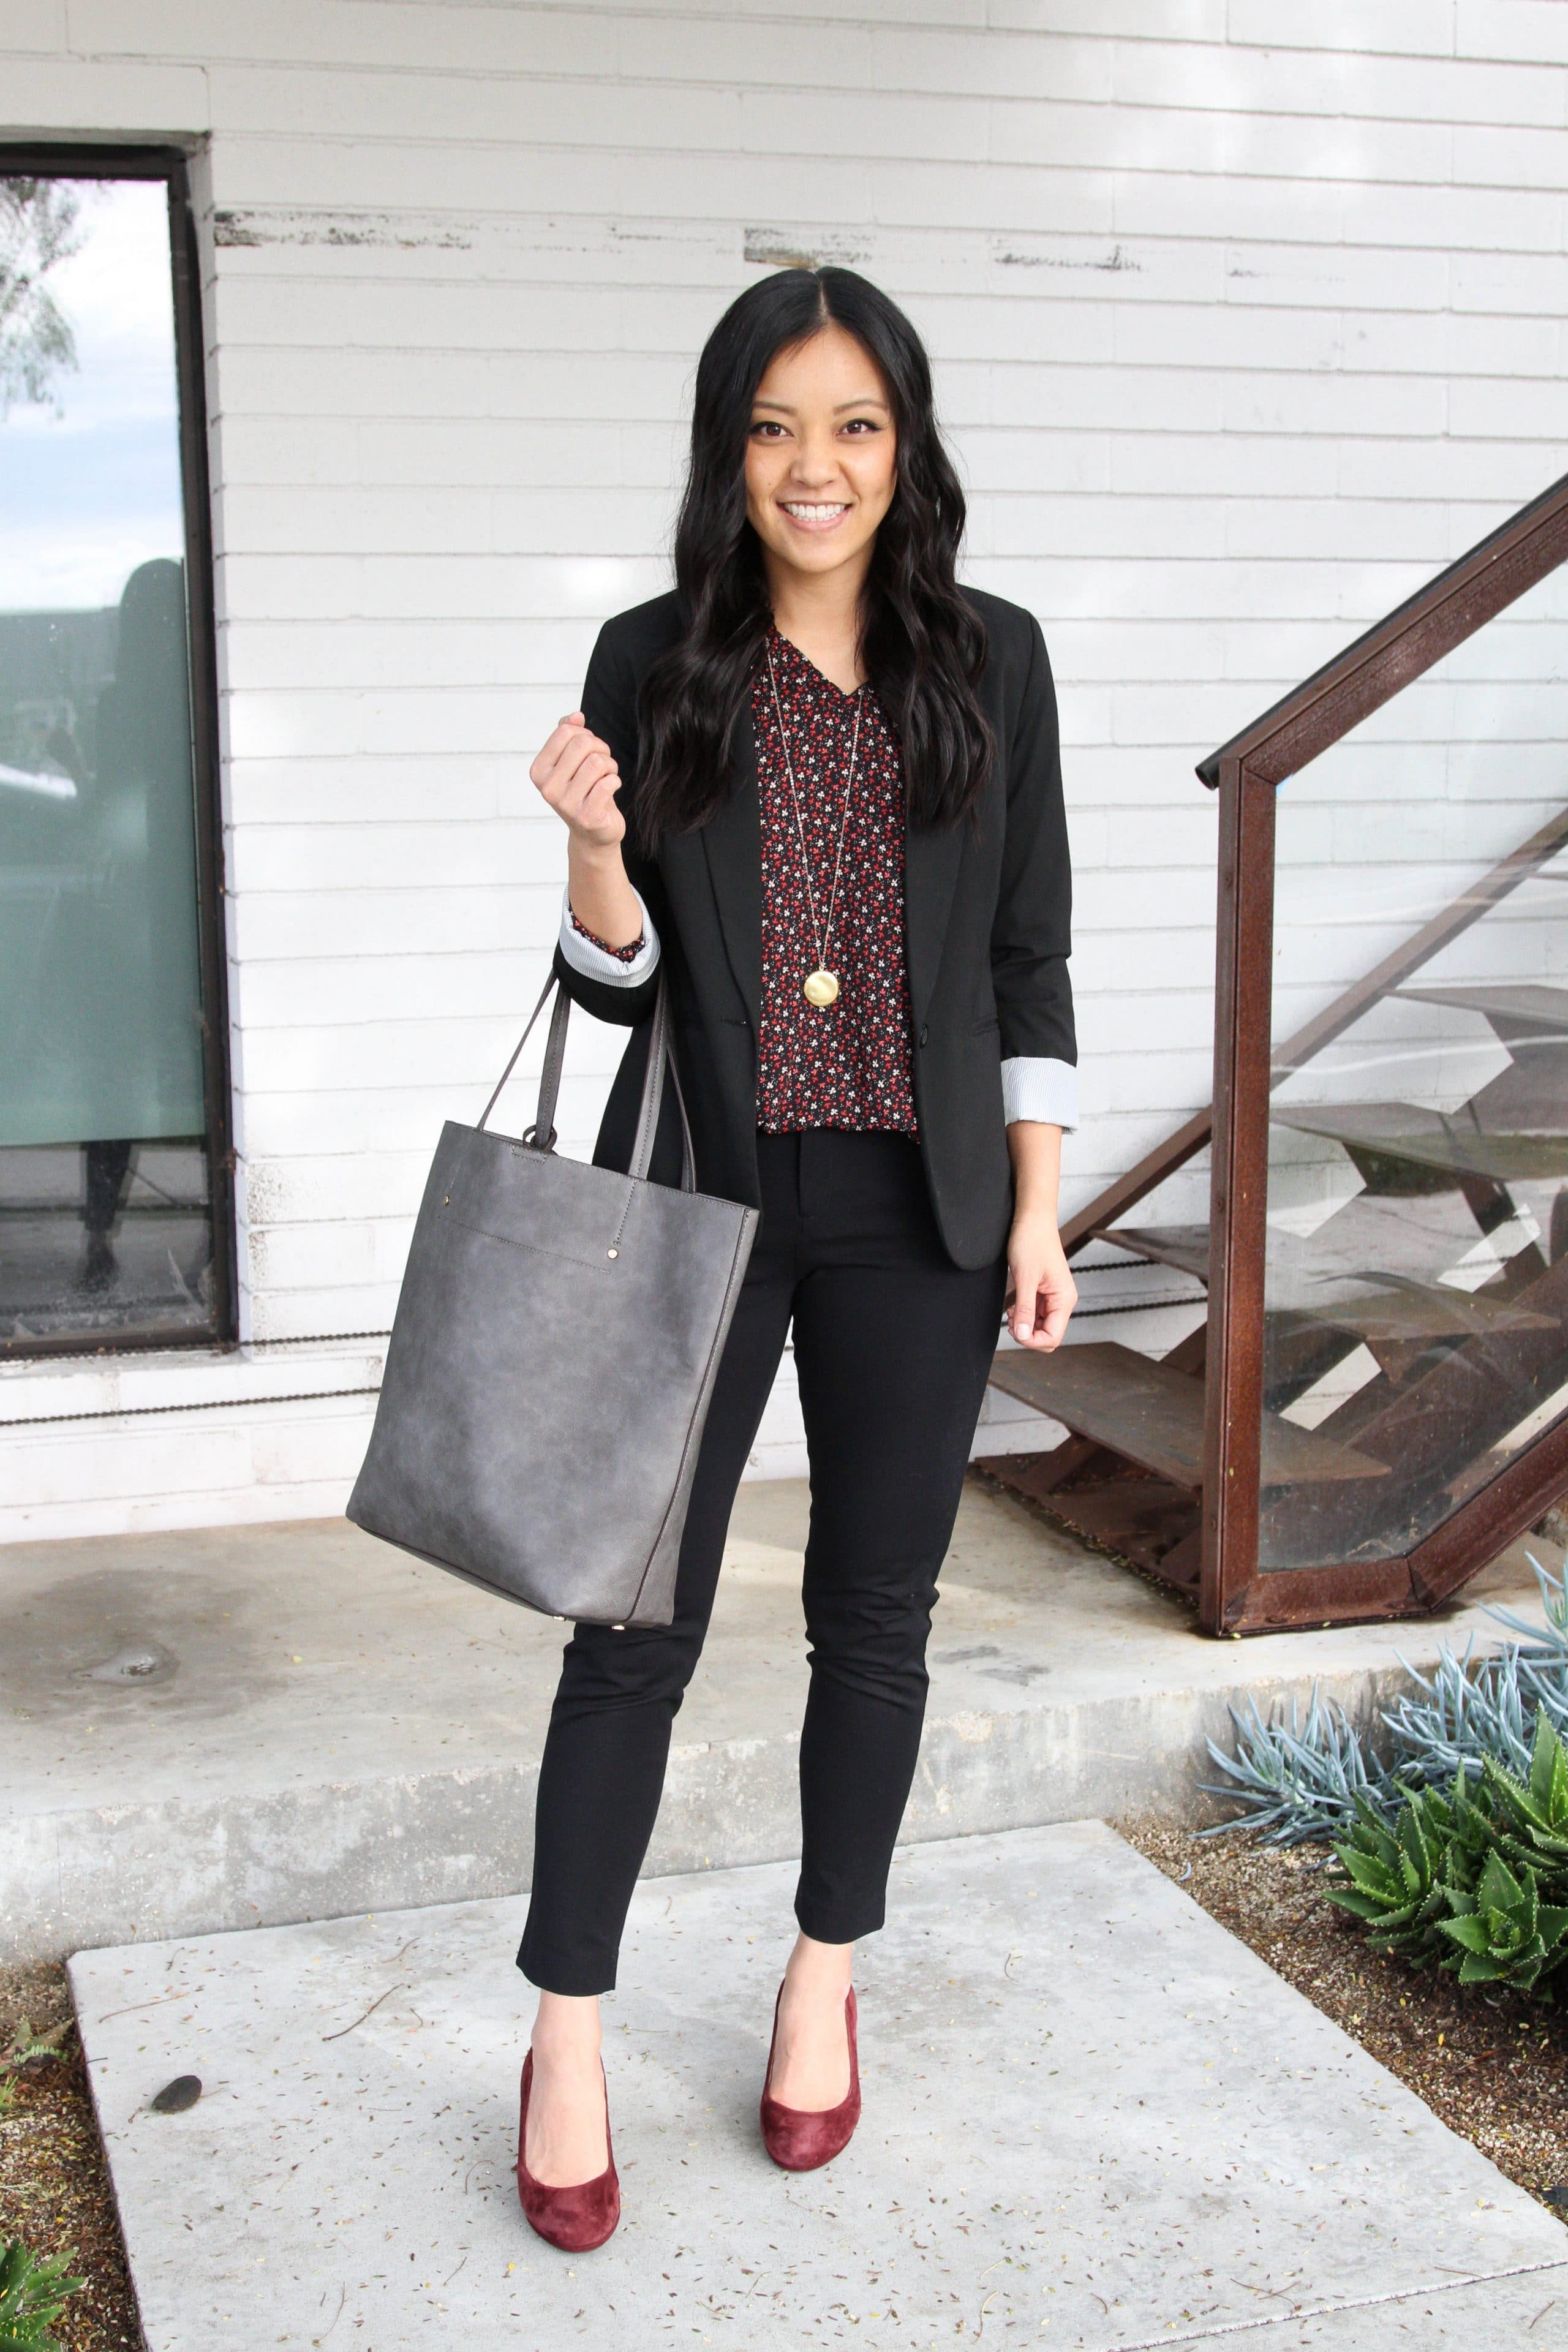 96193cdda1a Business casual look! Black pants and a black blazer are pretty standard